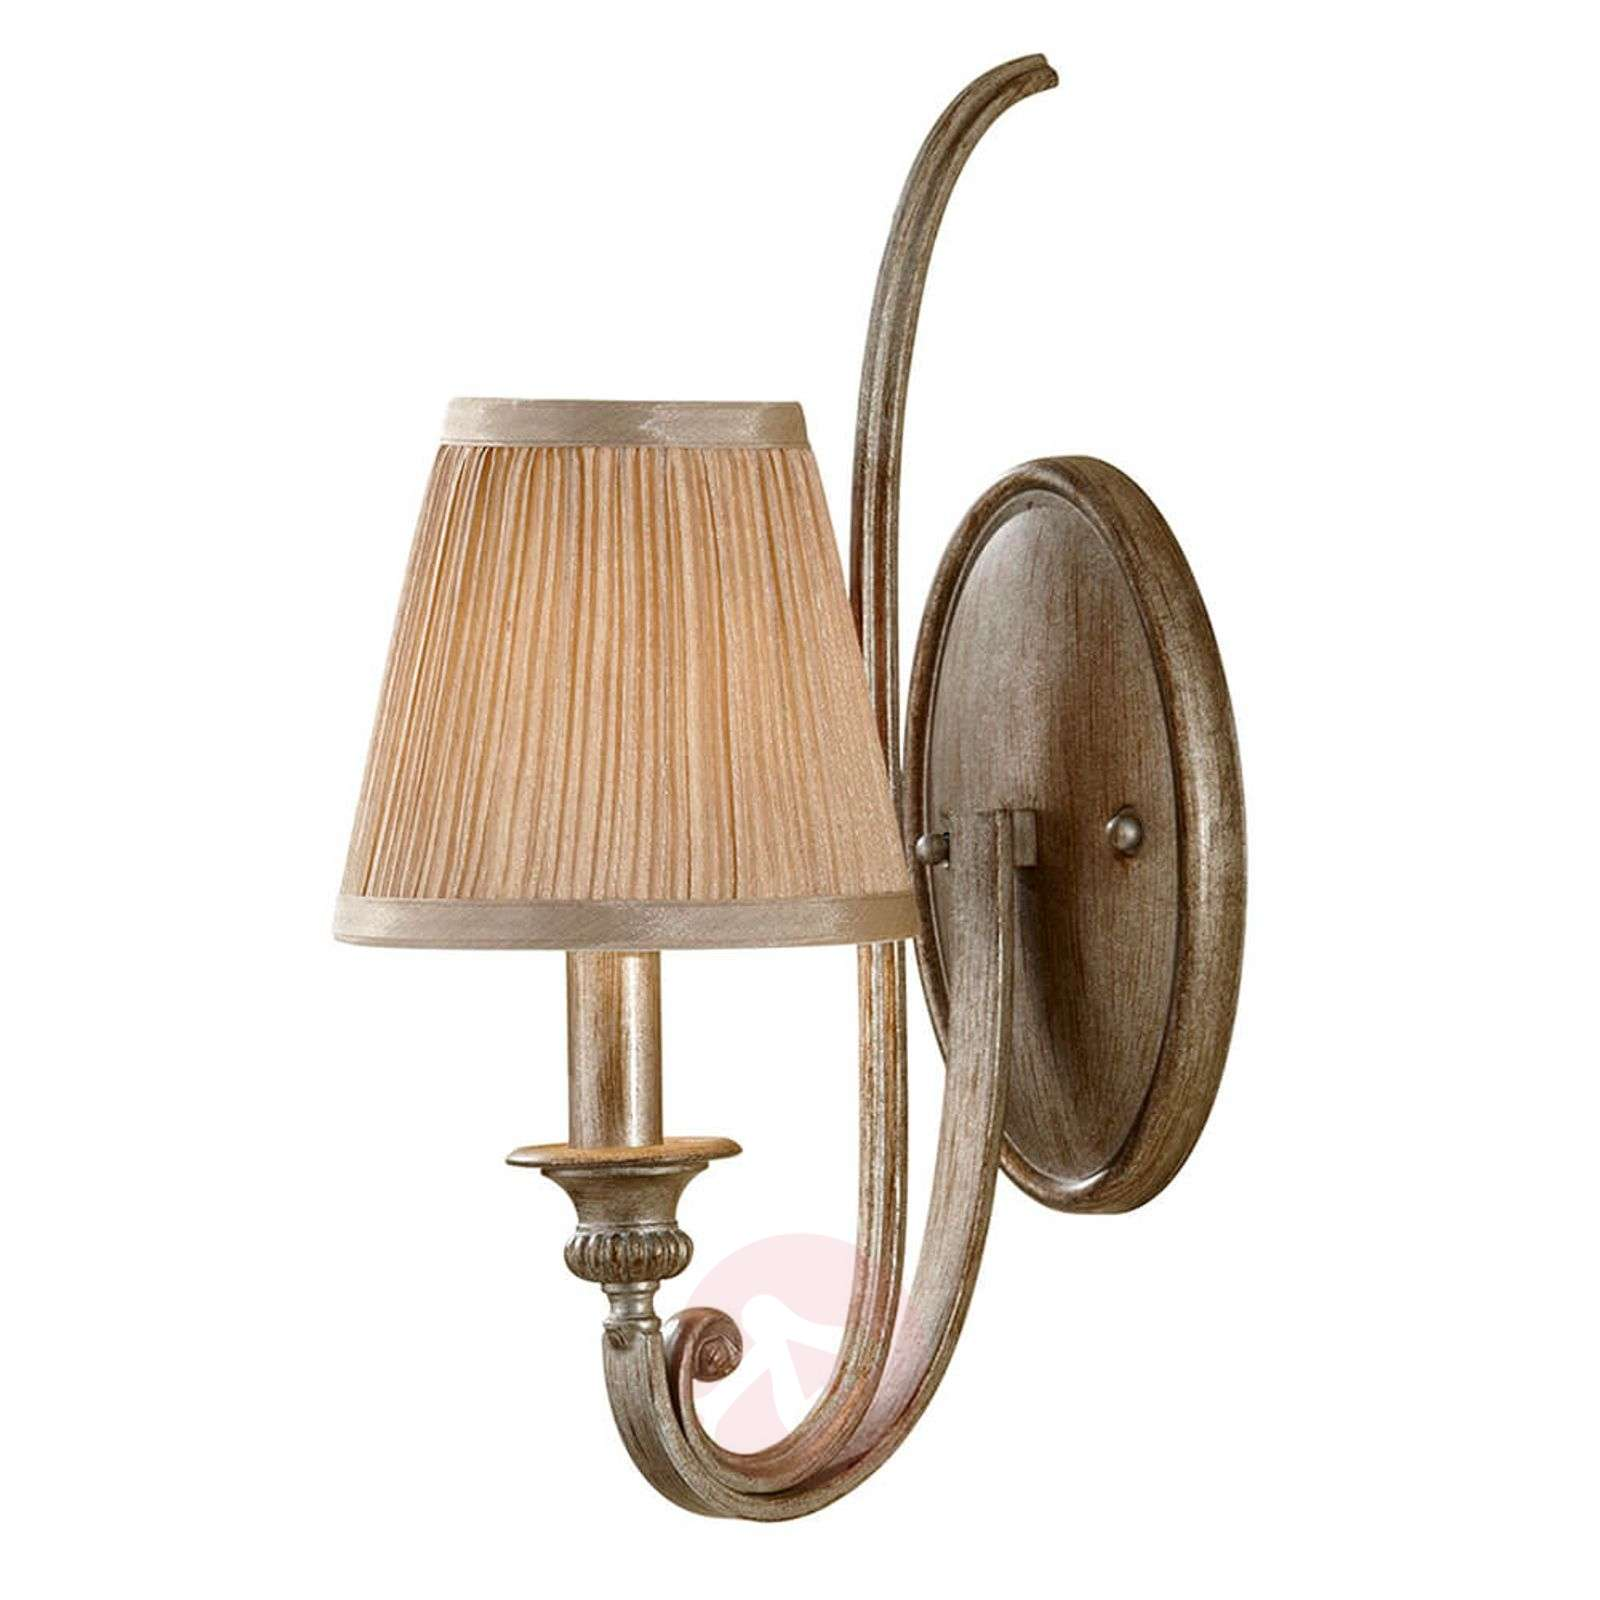 Fabric wall lamp Abbey with a dynamic design-3048512-01